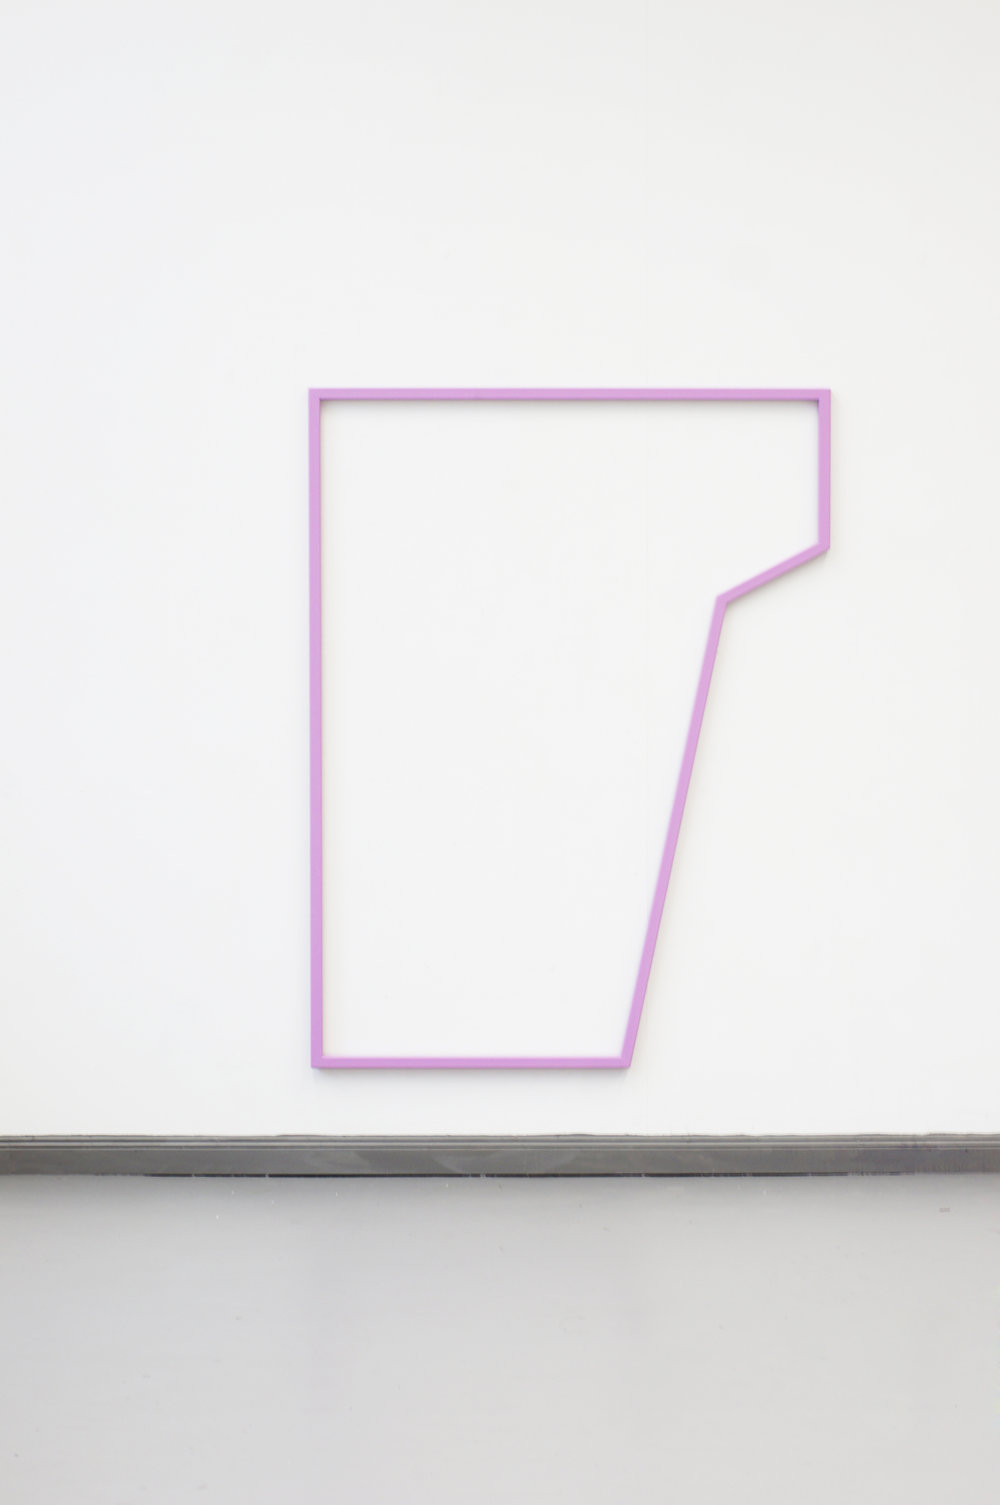 PLAYGROUND PURPLE  2015 // 170cm x 130cm  steel and varnish